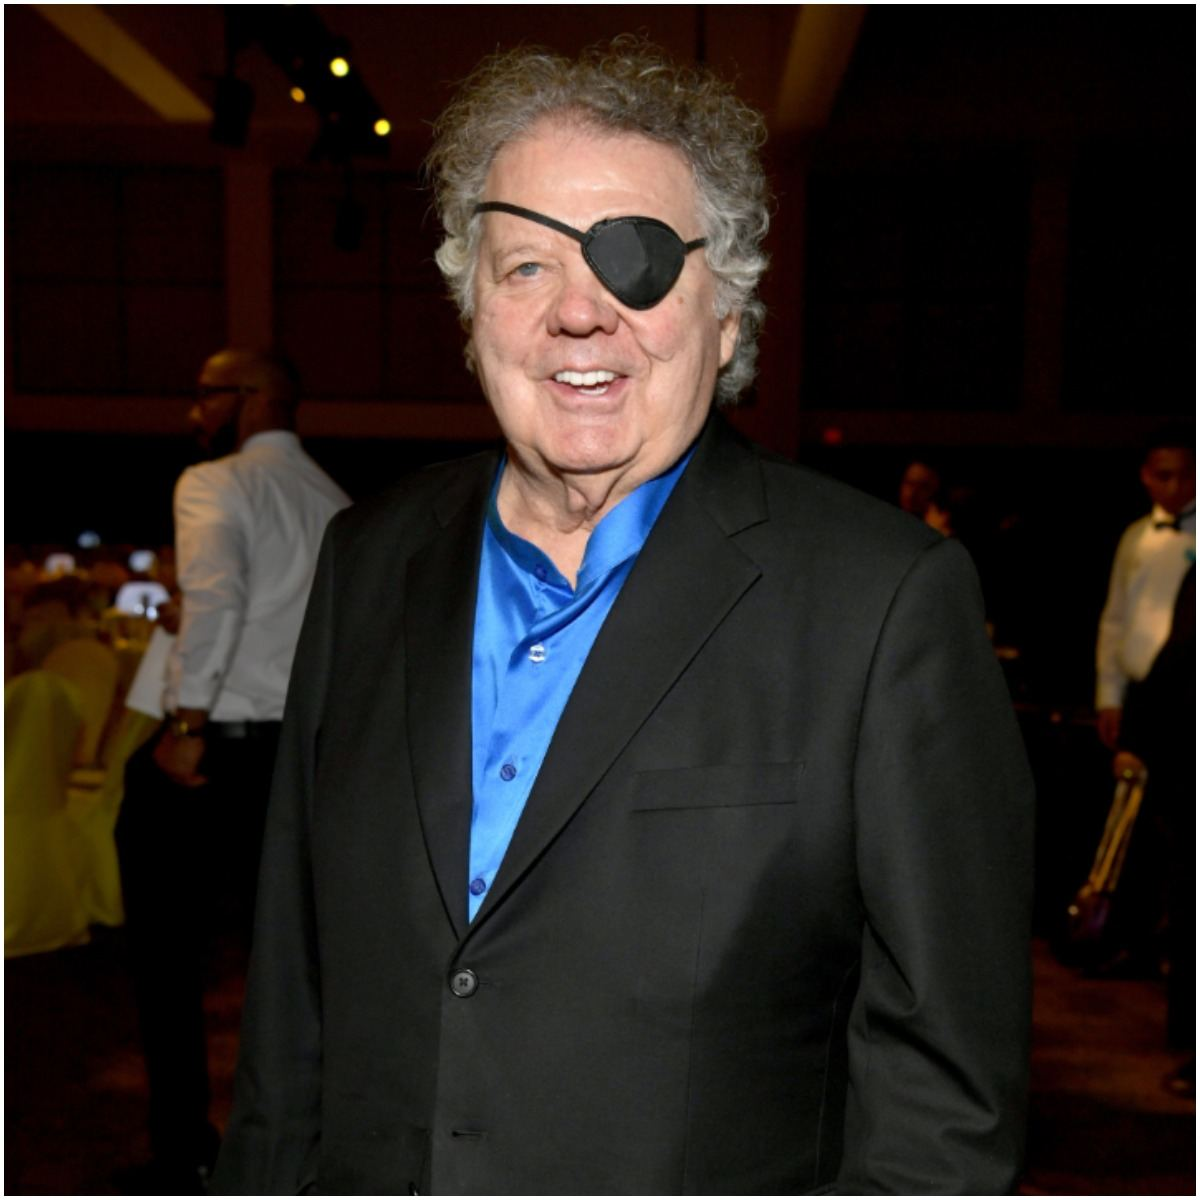 Dale Chihuly Quotes About Art & Life